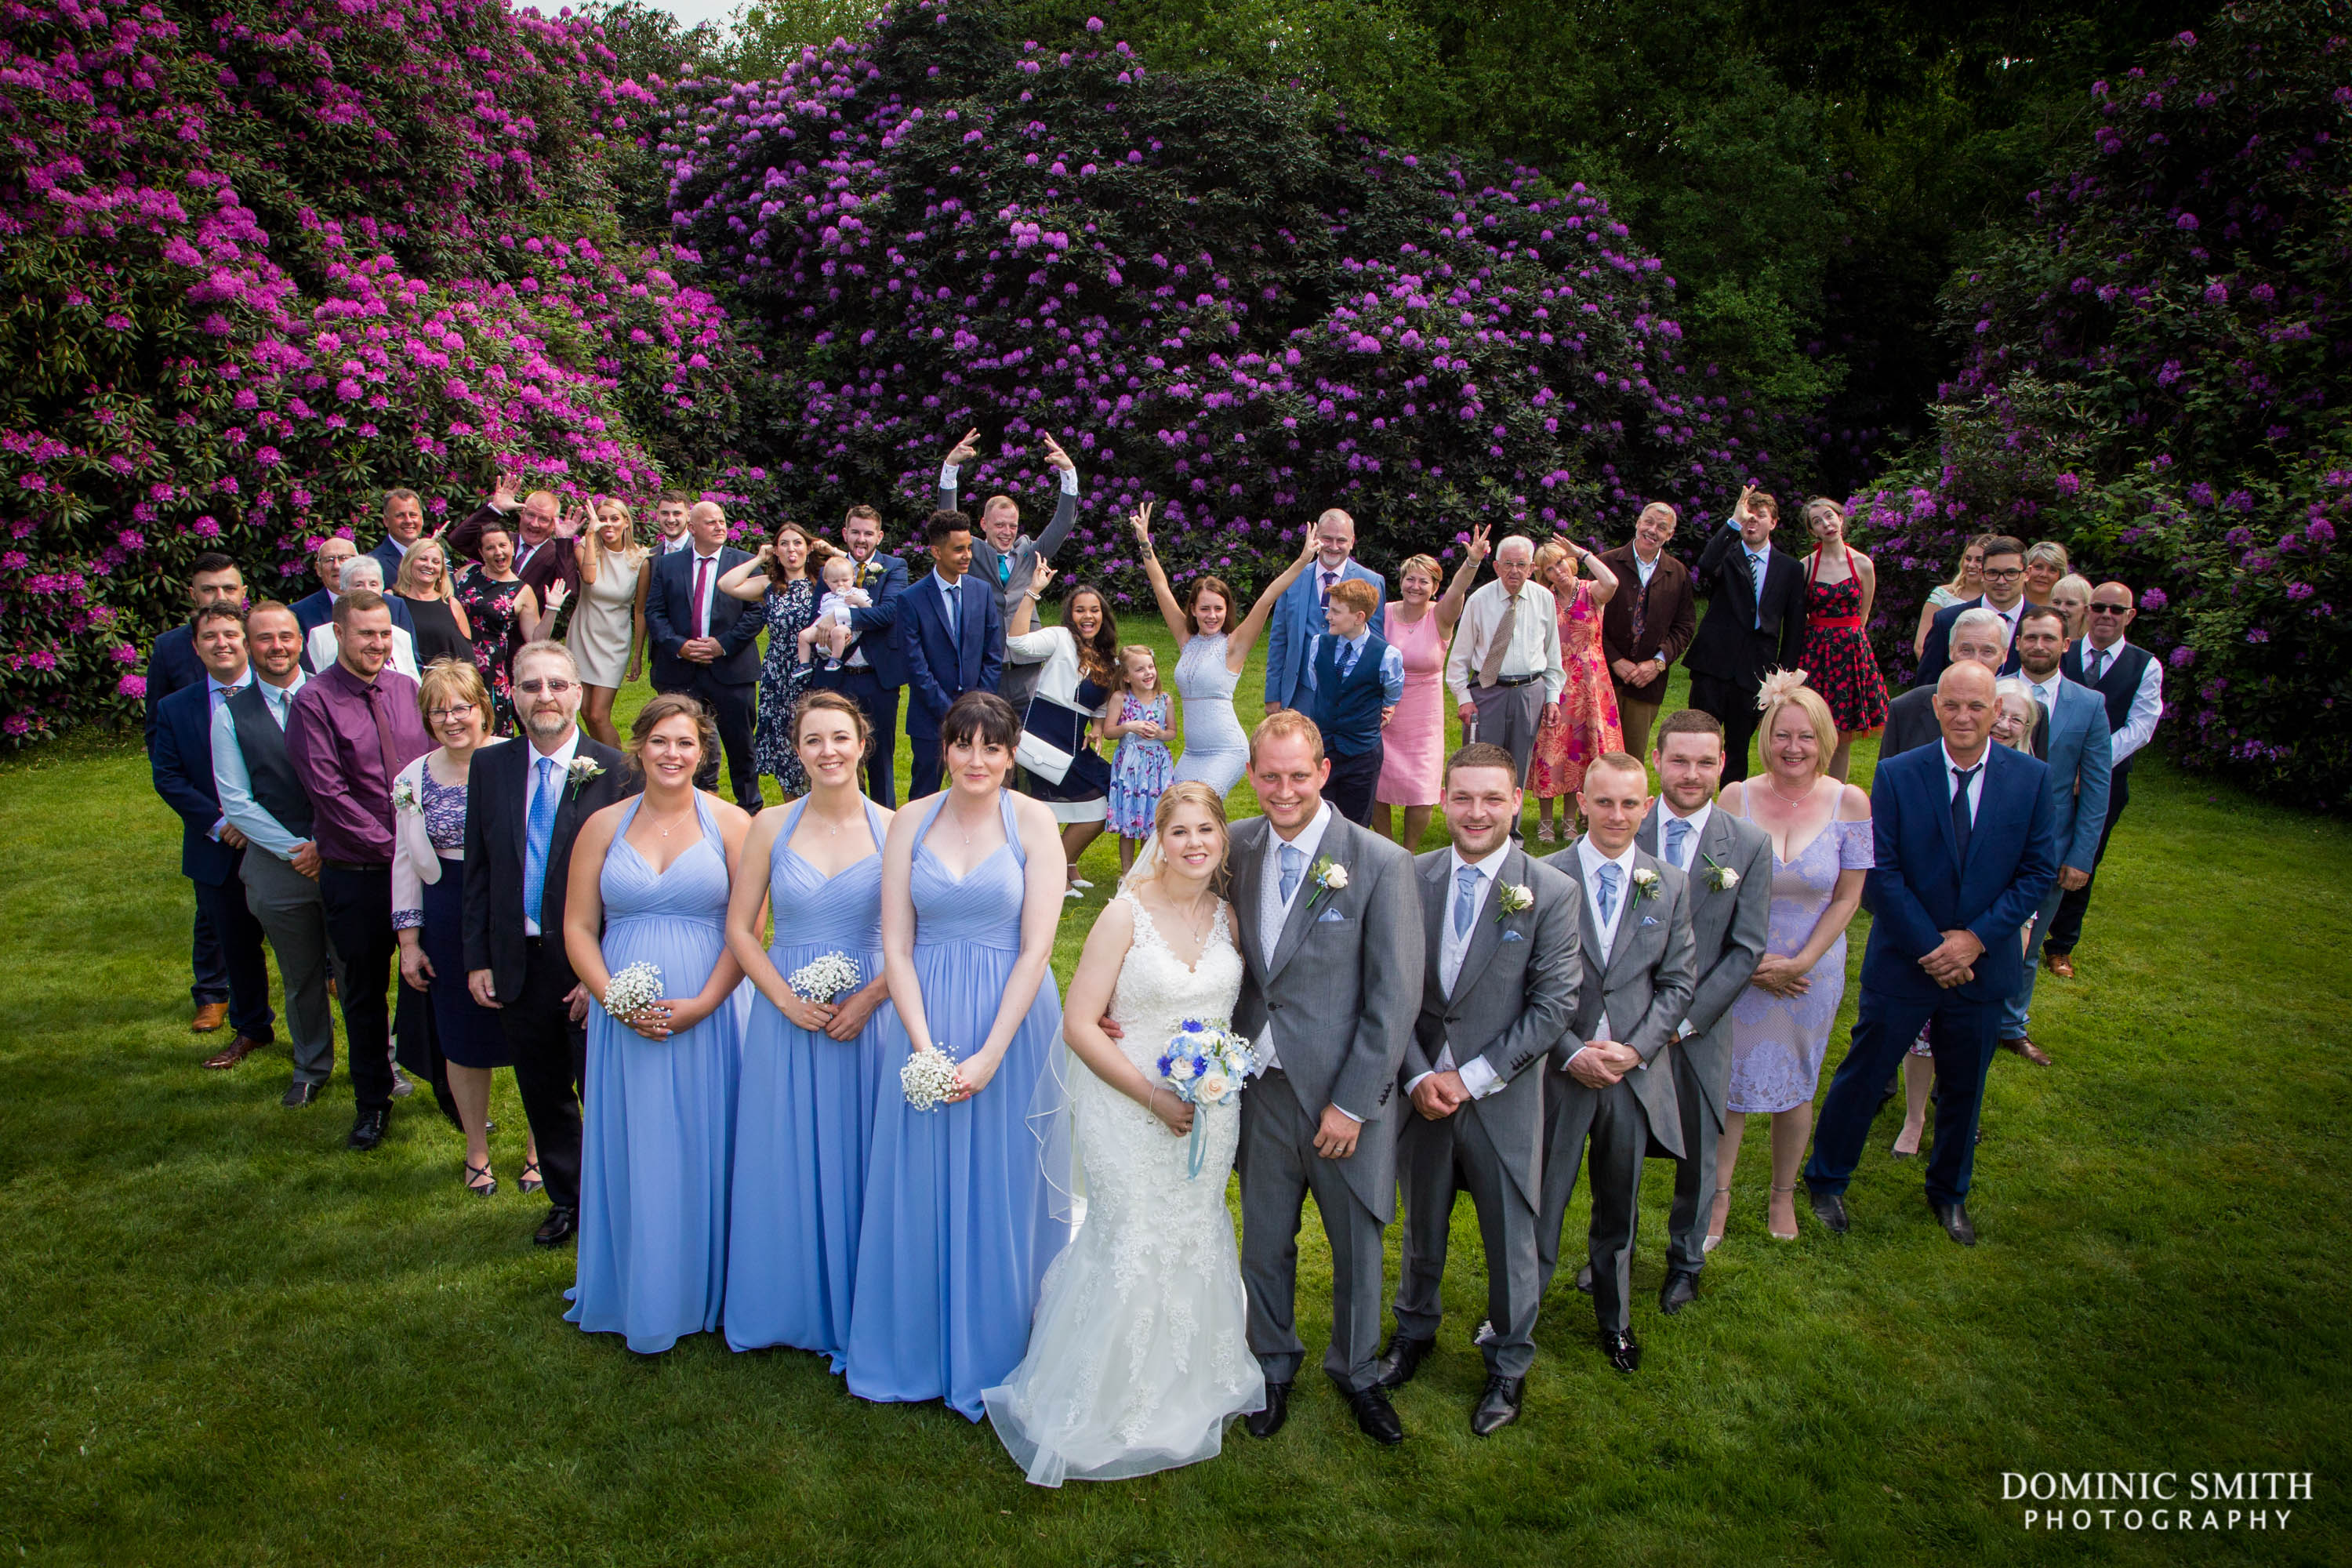 Wedding Group Photo at Highley Manor